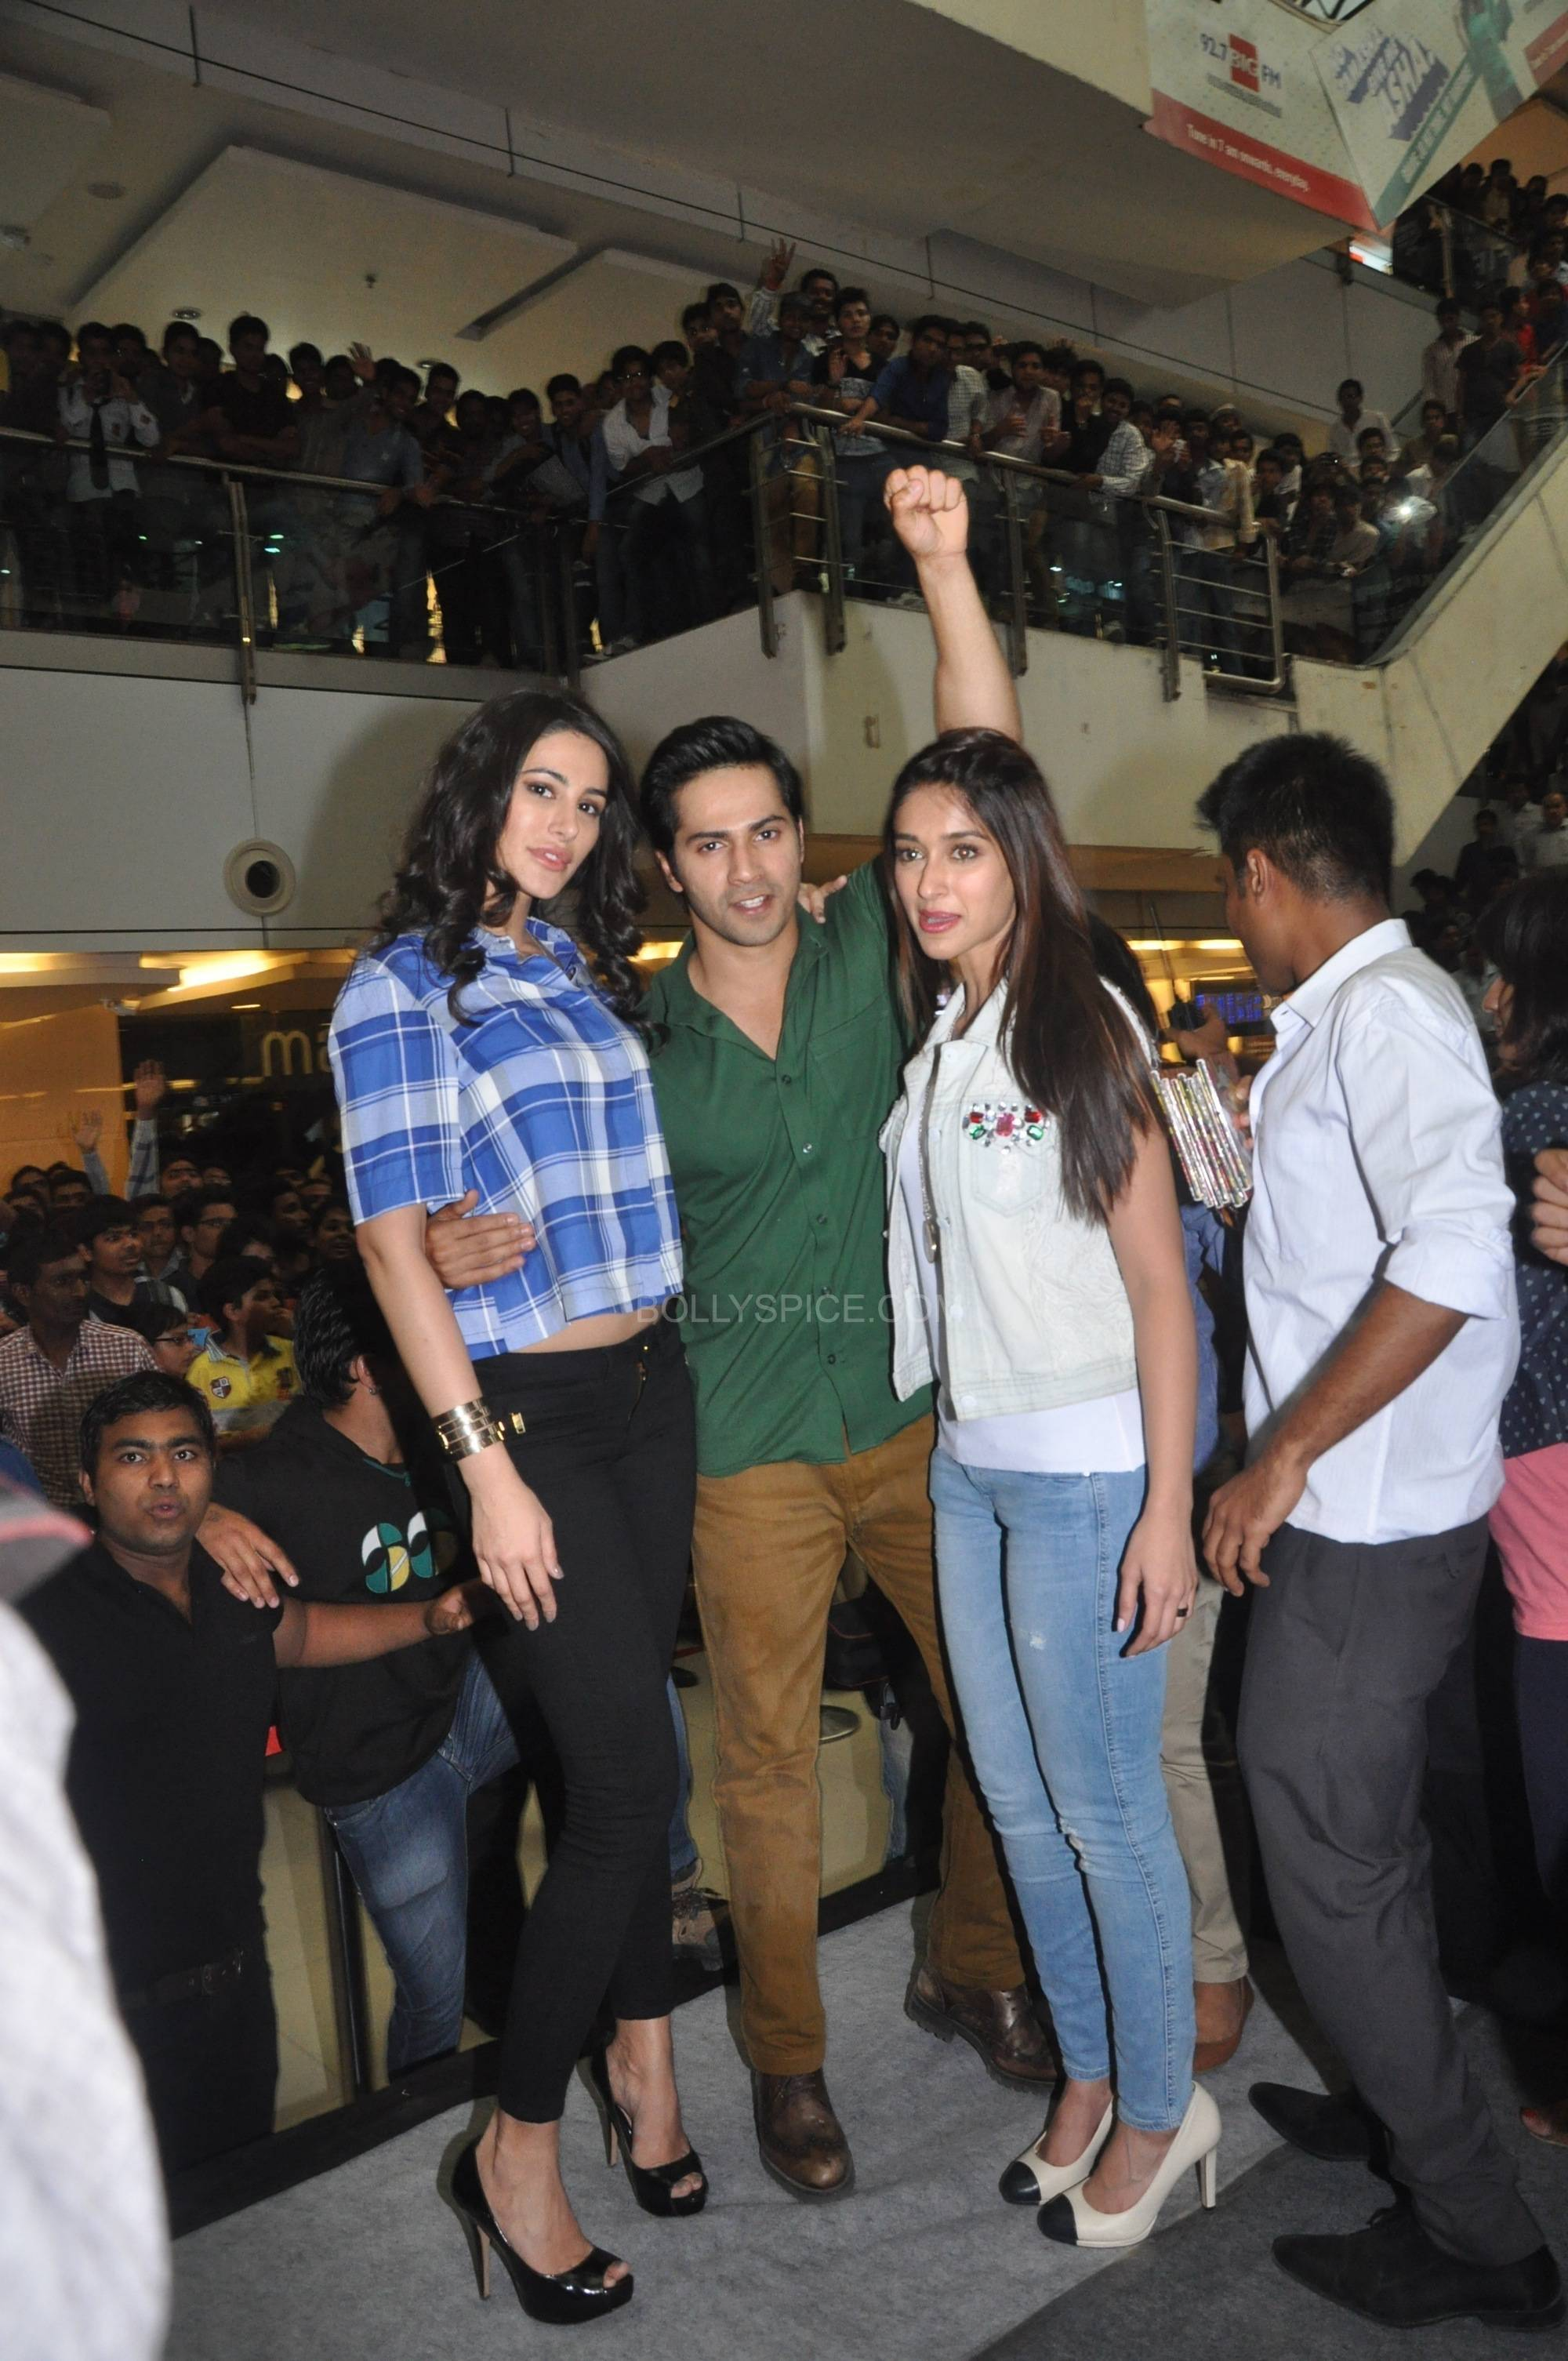 Nargis Fakri, Varun Dhawan and Ileana D'cruz at C21 Mall in Indore